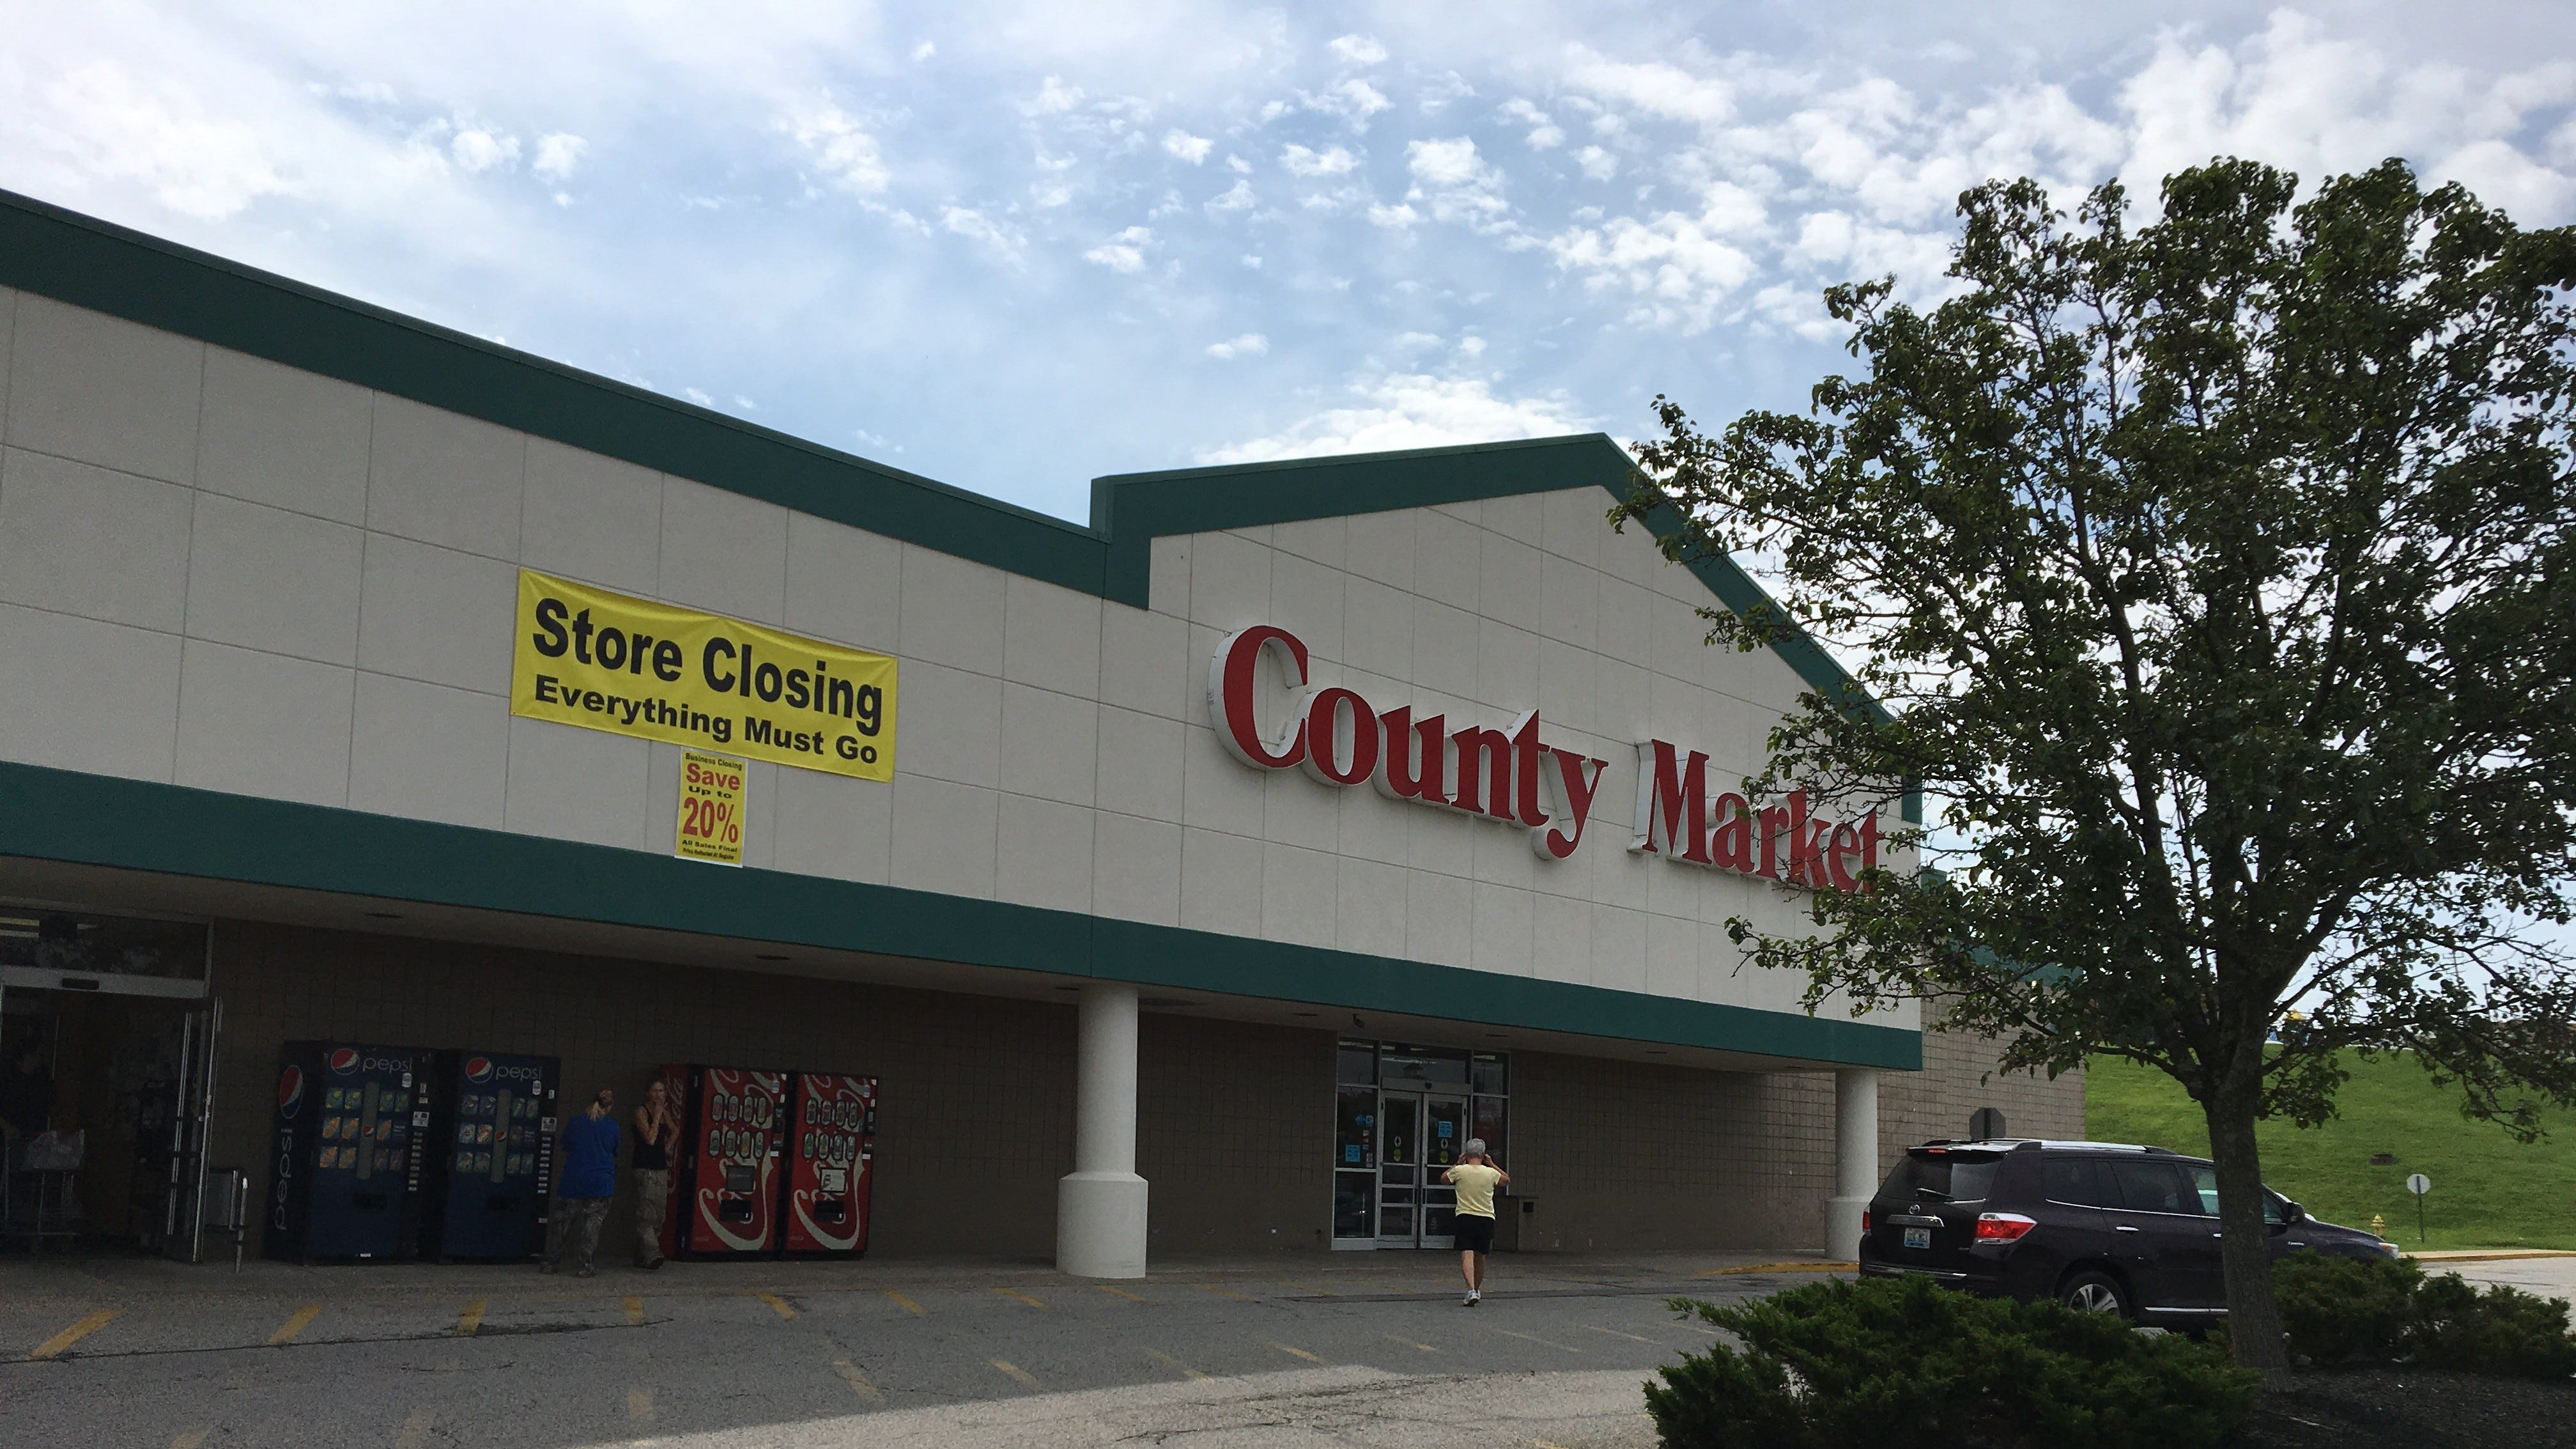 alexandria village green: county market closes, planet fitness coming